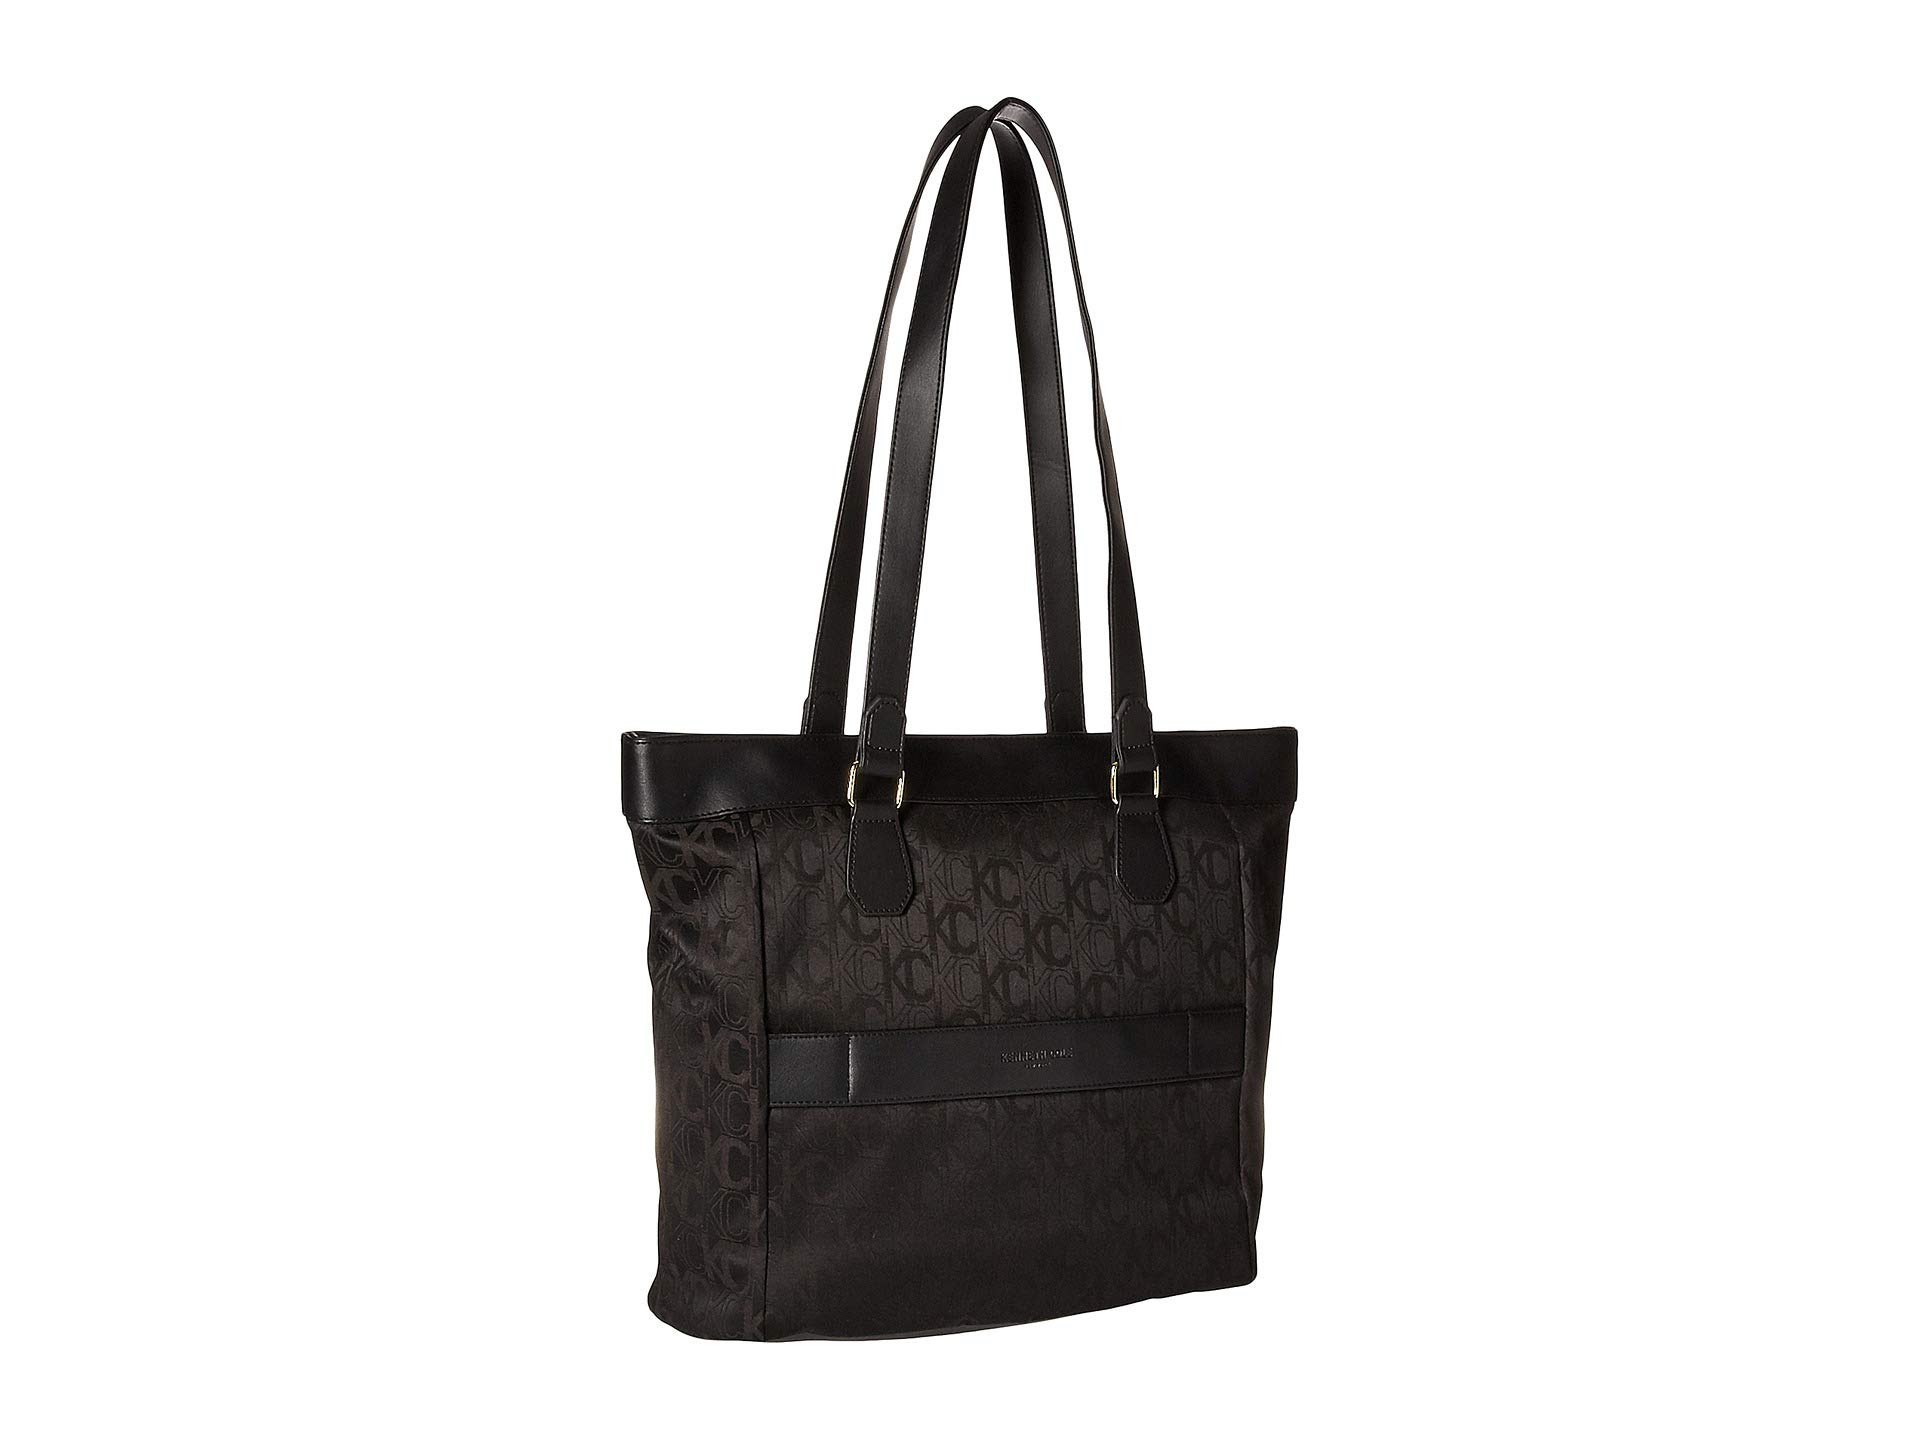 Reaction Tote Street Kenneth Cole Laptop Kc Black RqXS5wS